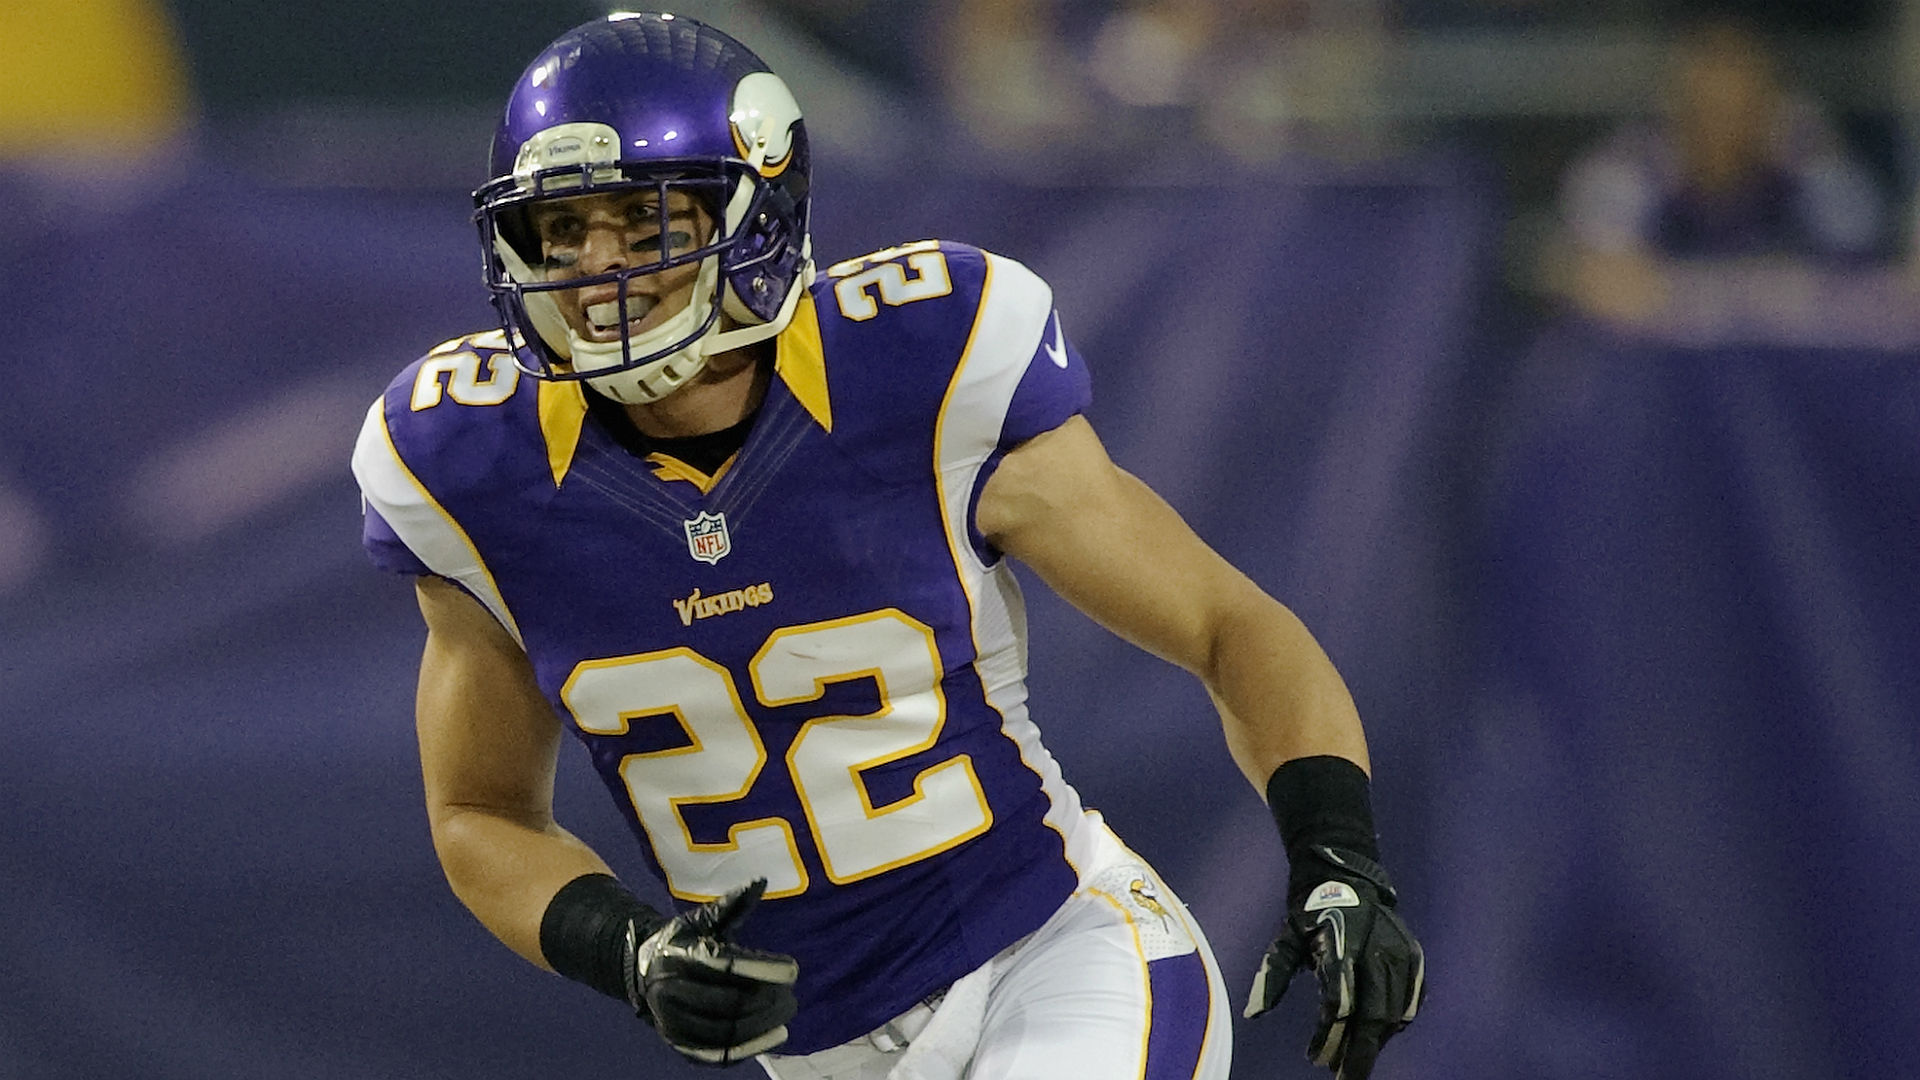 Vikings make Harrison Smith NFL s highest paid safety according